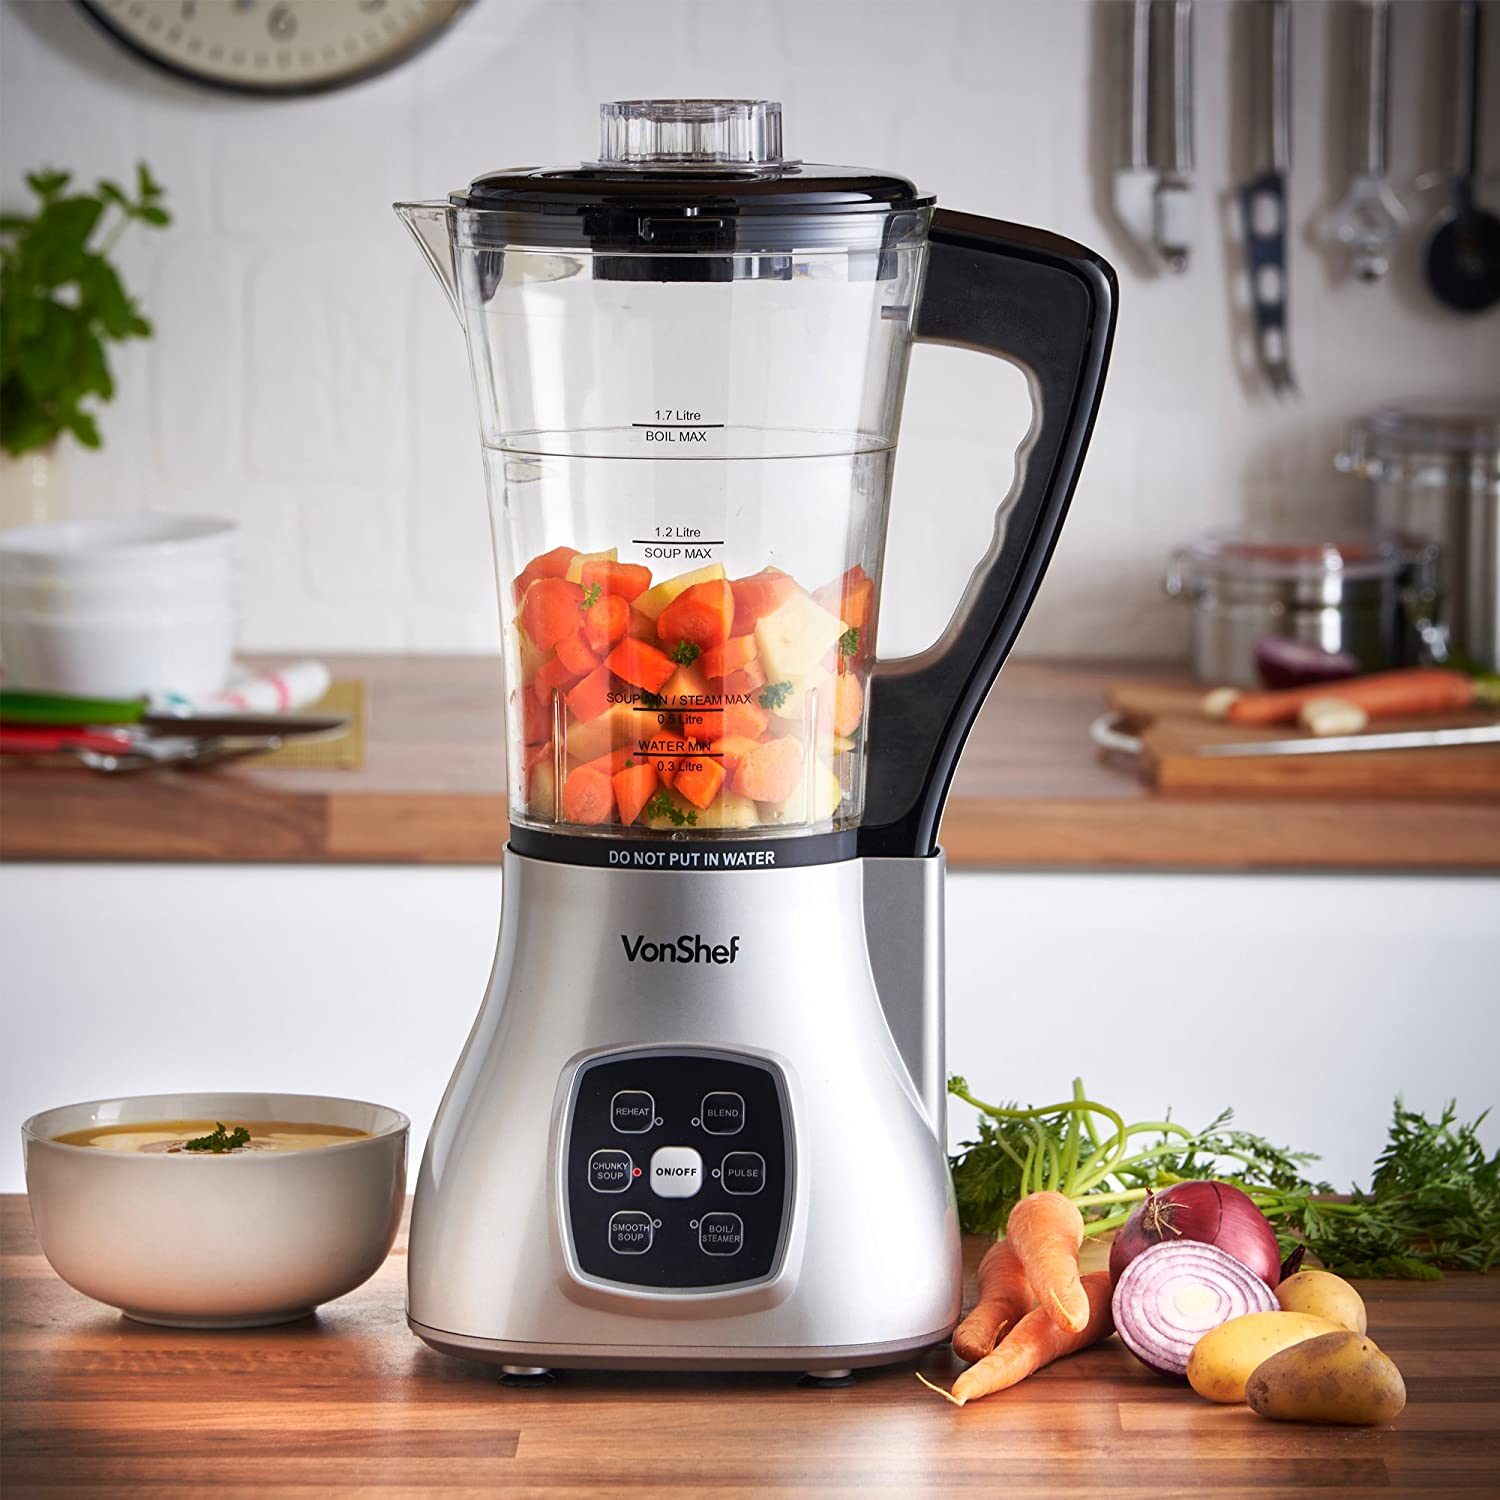 Priced at under £40, the VonShef is a very cheap soup maker and comes packed with tons of features.